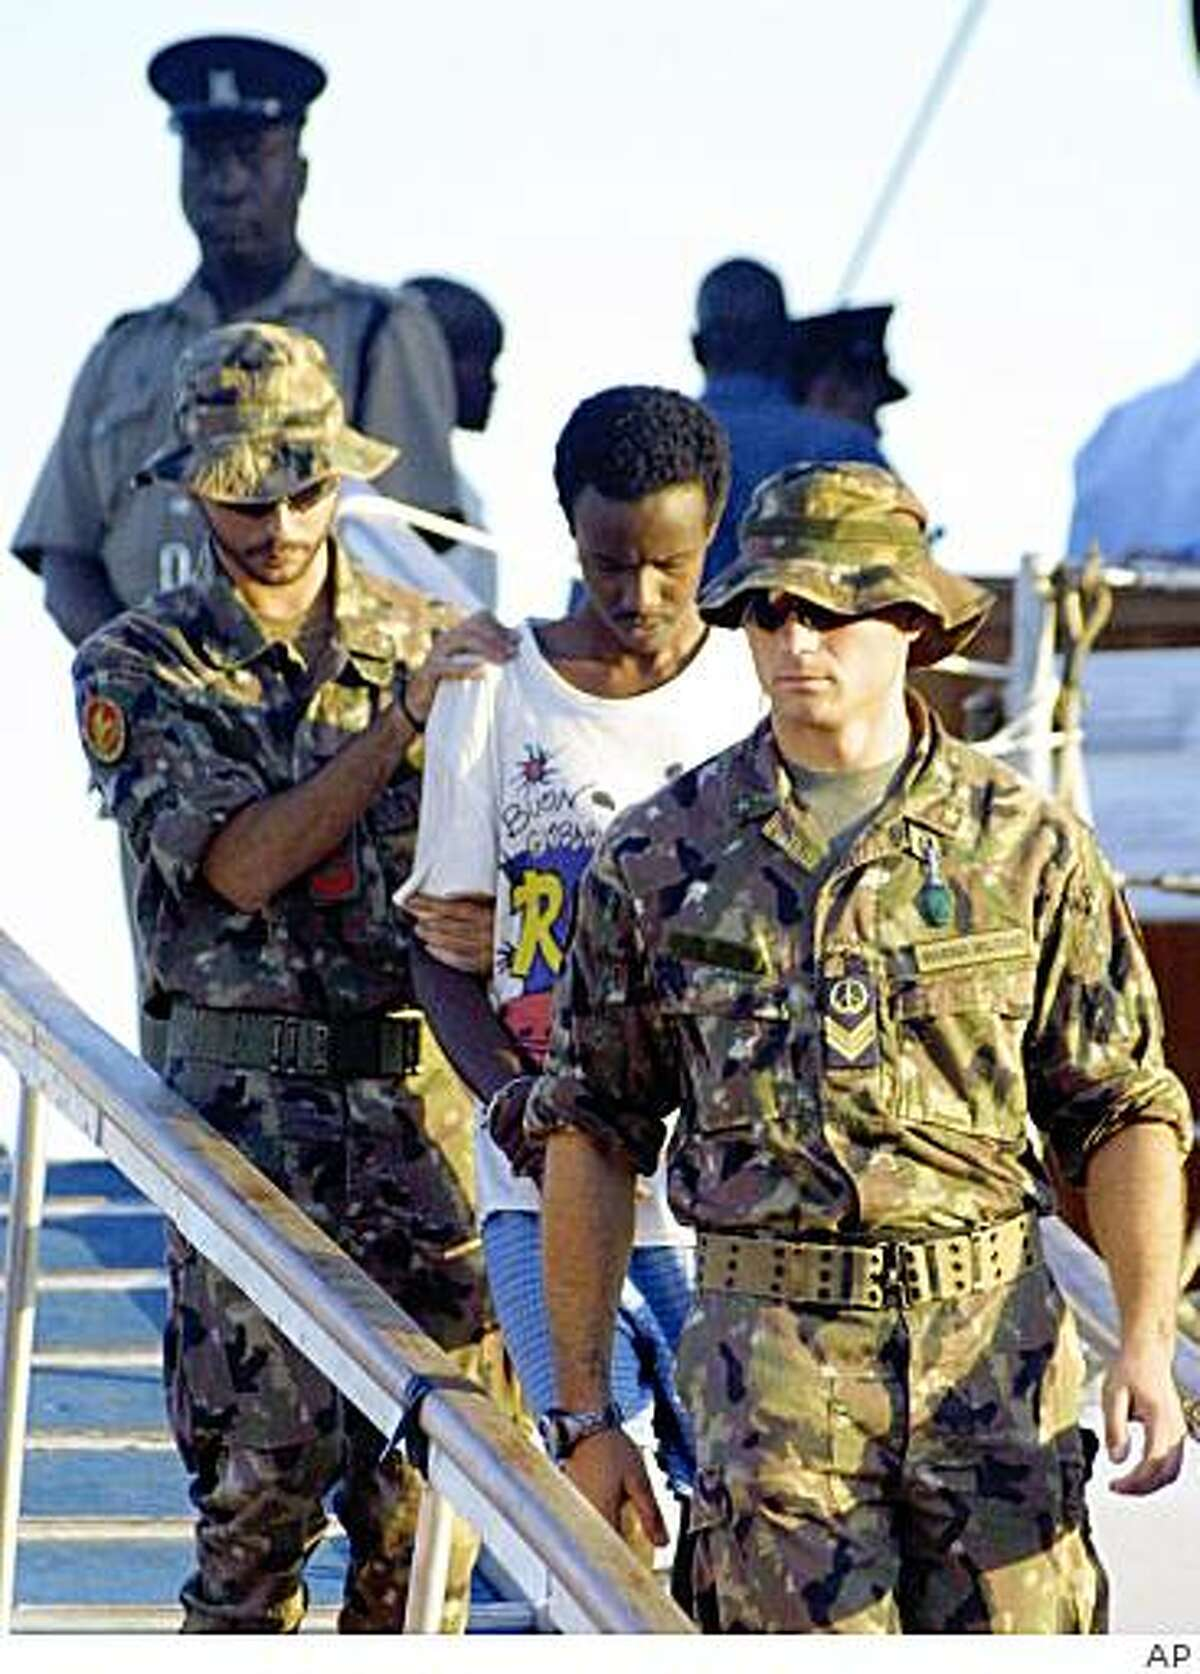 One of the nine suspected Somali pirates, second from right, is disembarked from an Italian warship MV Maestrale at the port of Mombasa, Kenya Thursday, June 25, 2009. The suspected pirates were arrested by the Italian naval officers along the Gulf of Eden as they attempted to hijack a cargo ship MV Marie K which was headed to Ireland from Abu Dhabi. They will be taken to a court in Mombasa on Friday. (AP Photo)